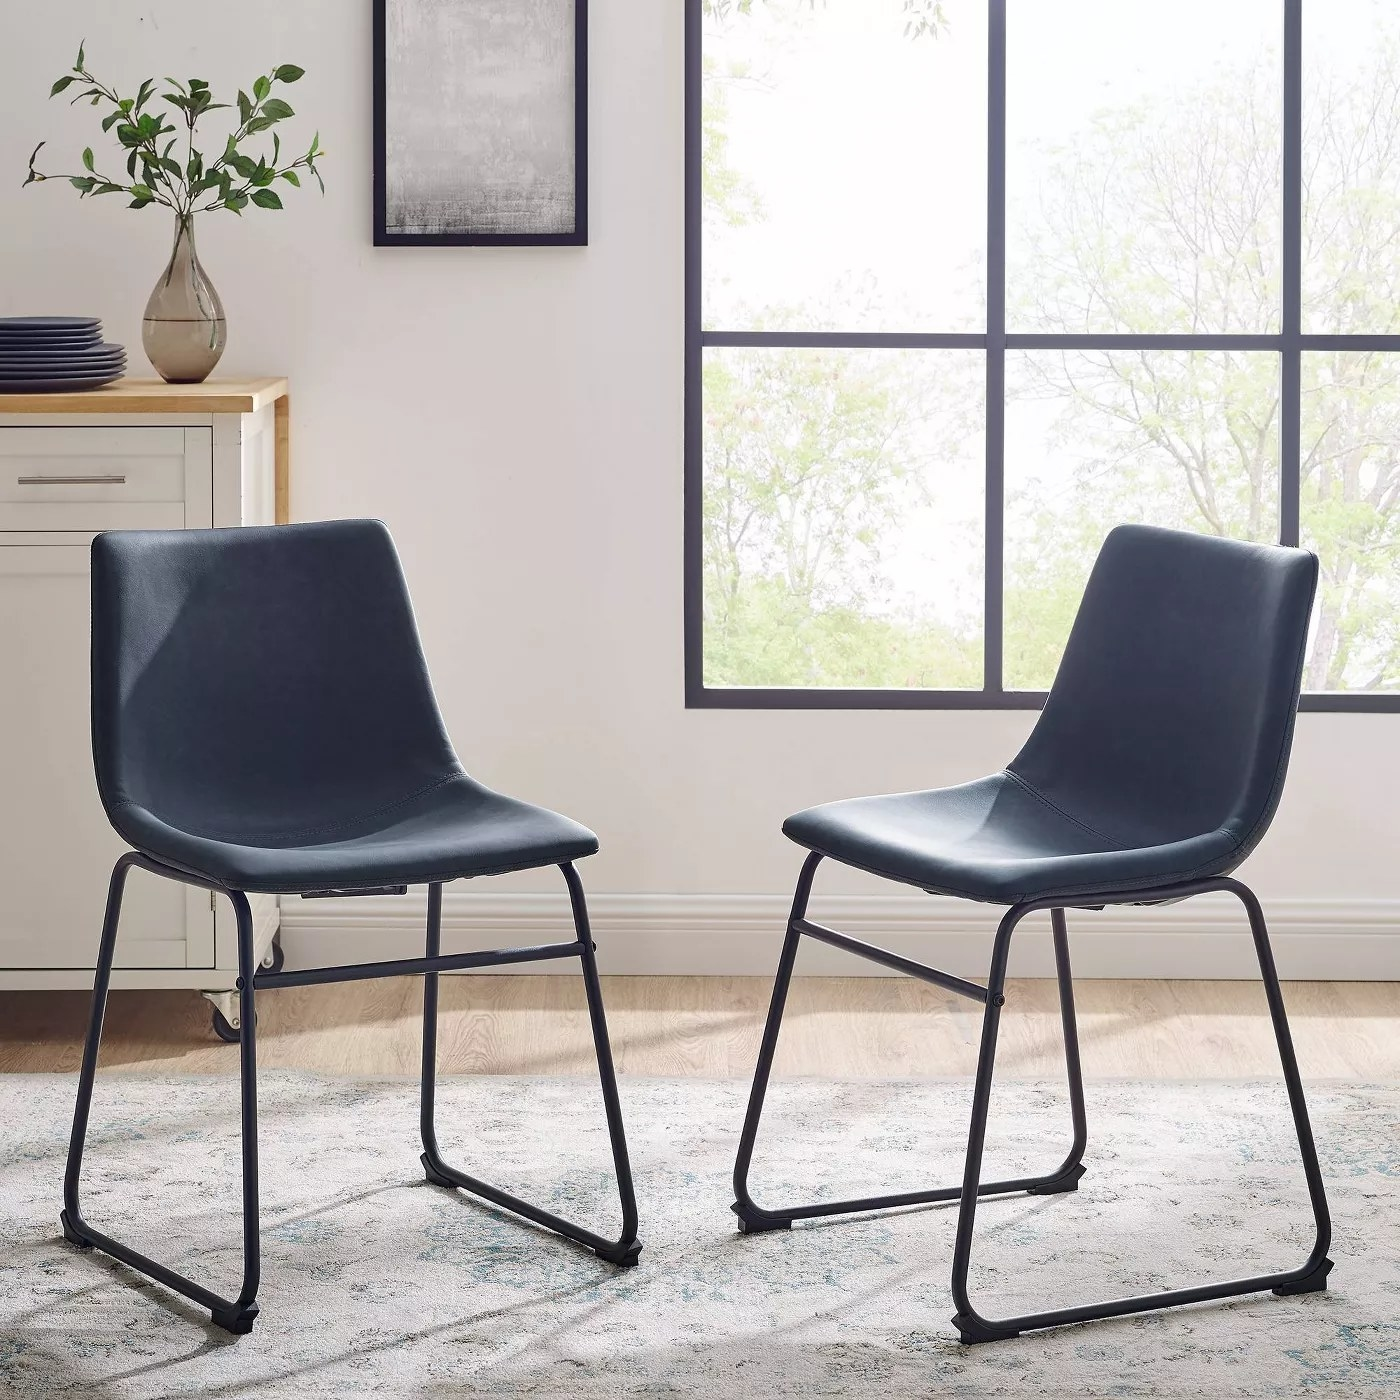 The navy blue dining chairs